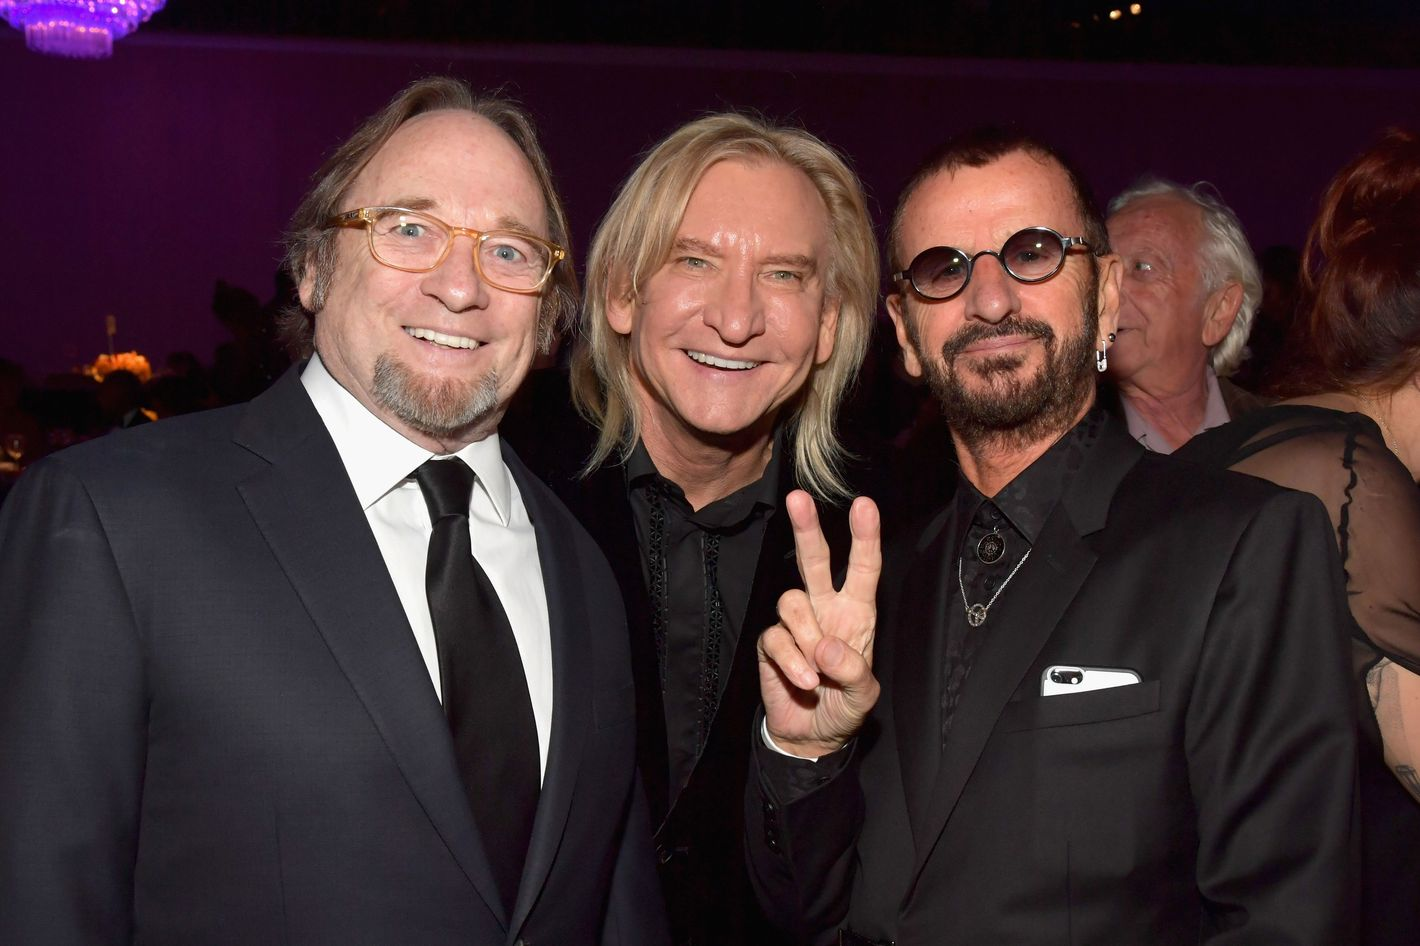 Ringo Starr And Joe Walsh A Friendship Timeline Discover joe walsh famous and rare quotes. ringo starr and joe walsh a friendship